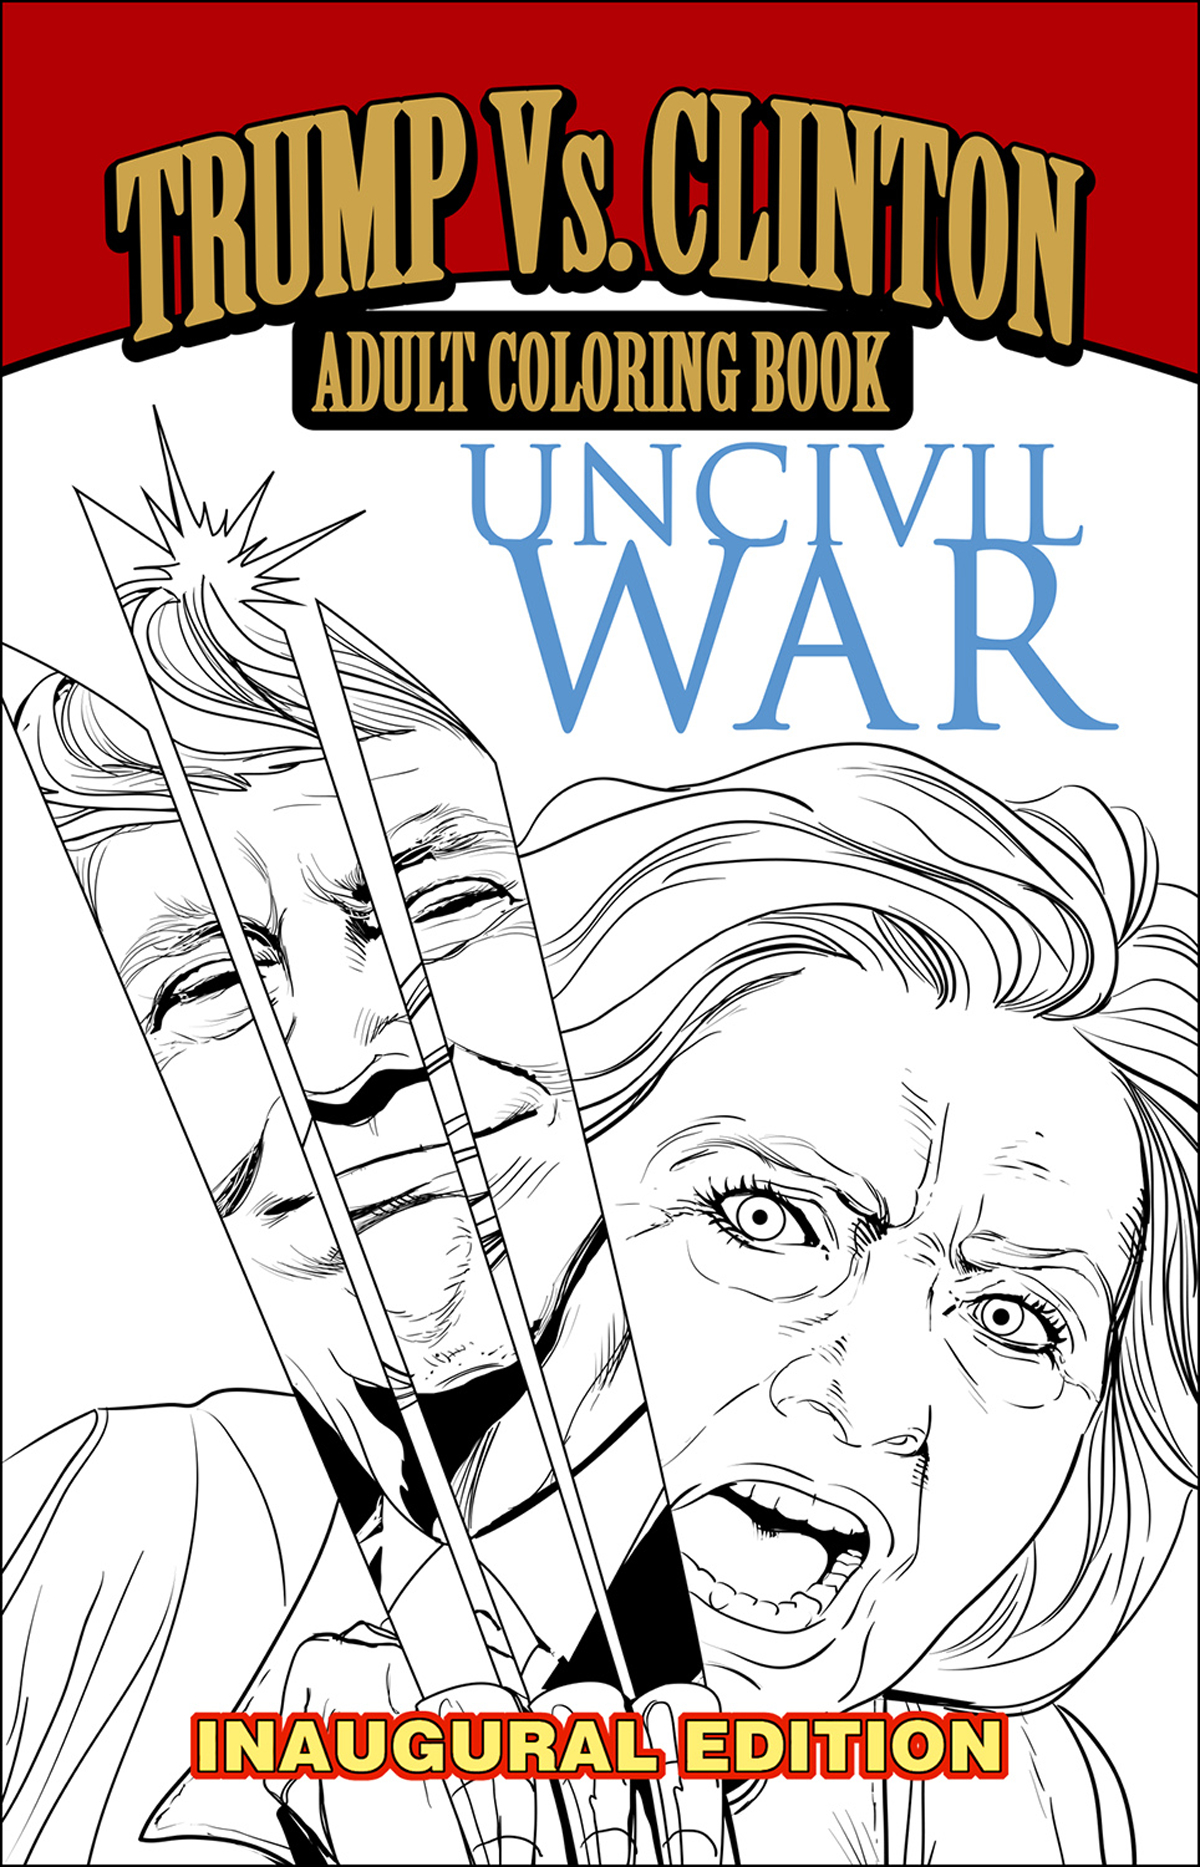 UNCIVIL WAR INAUGURAL EDITION COLORING BOOK